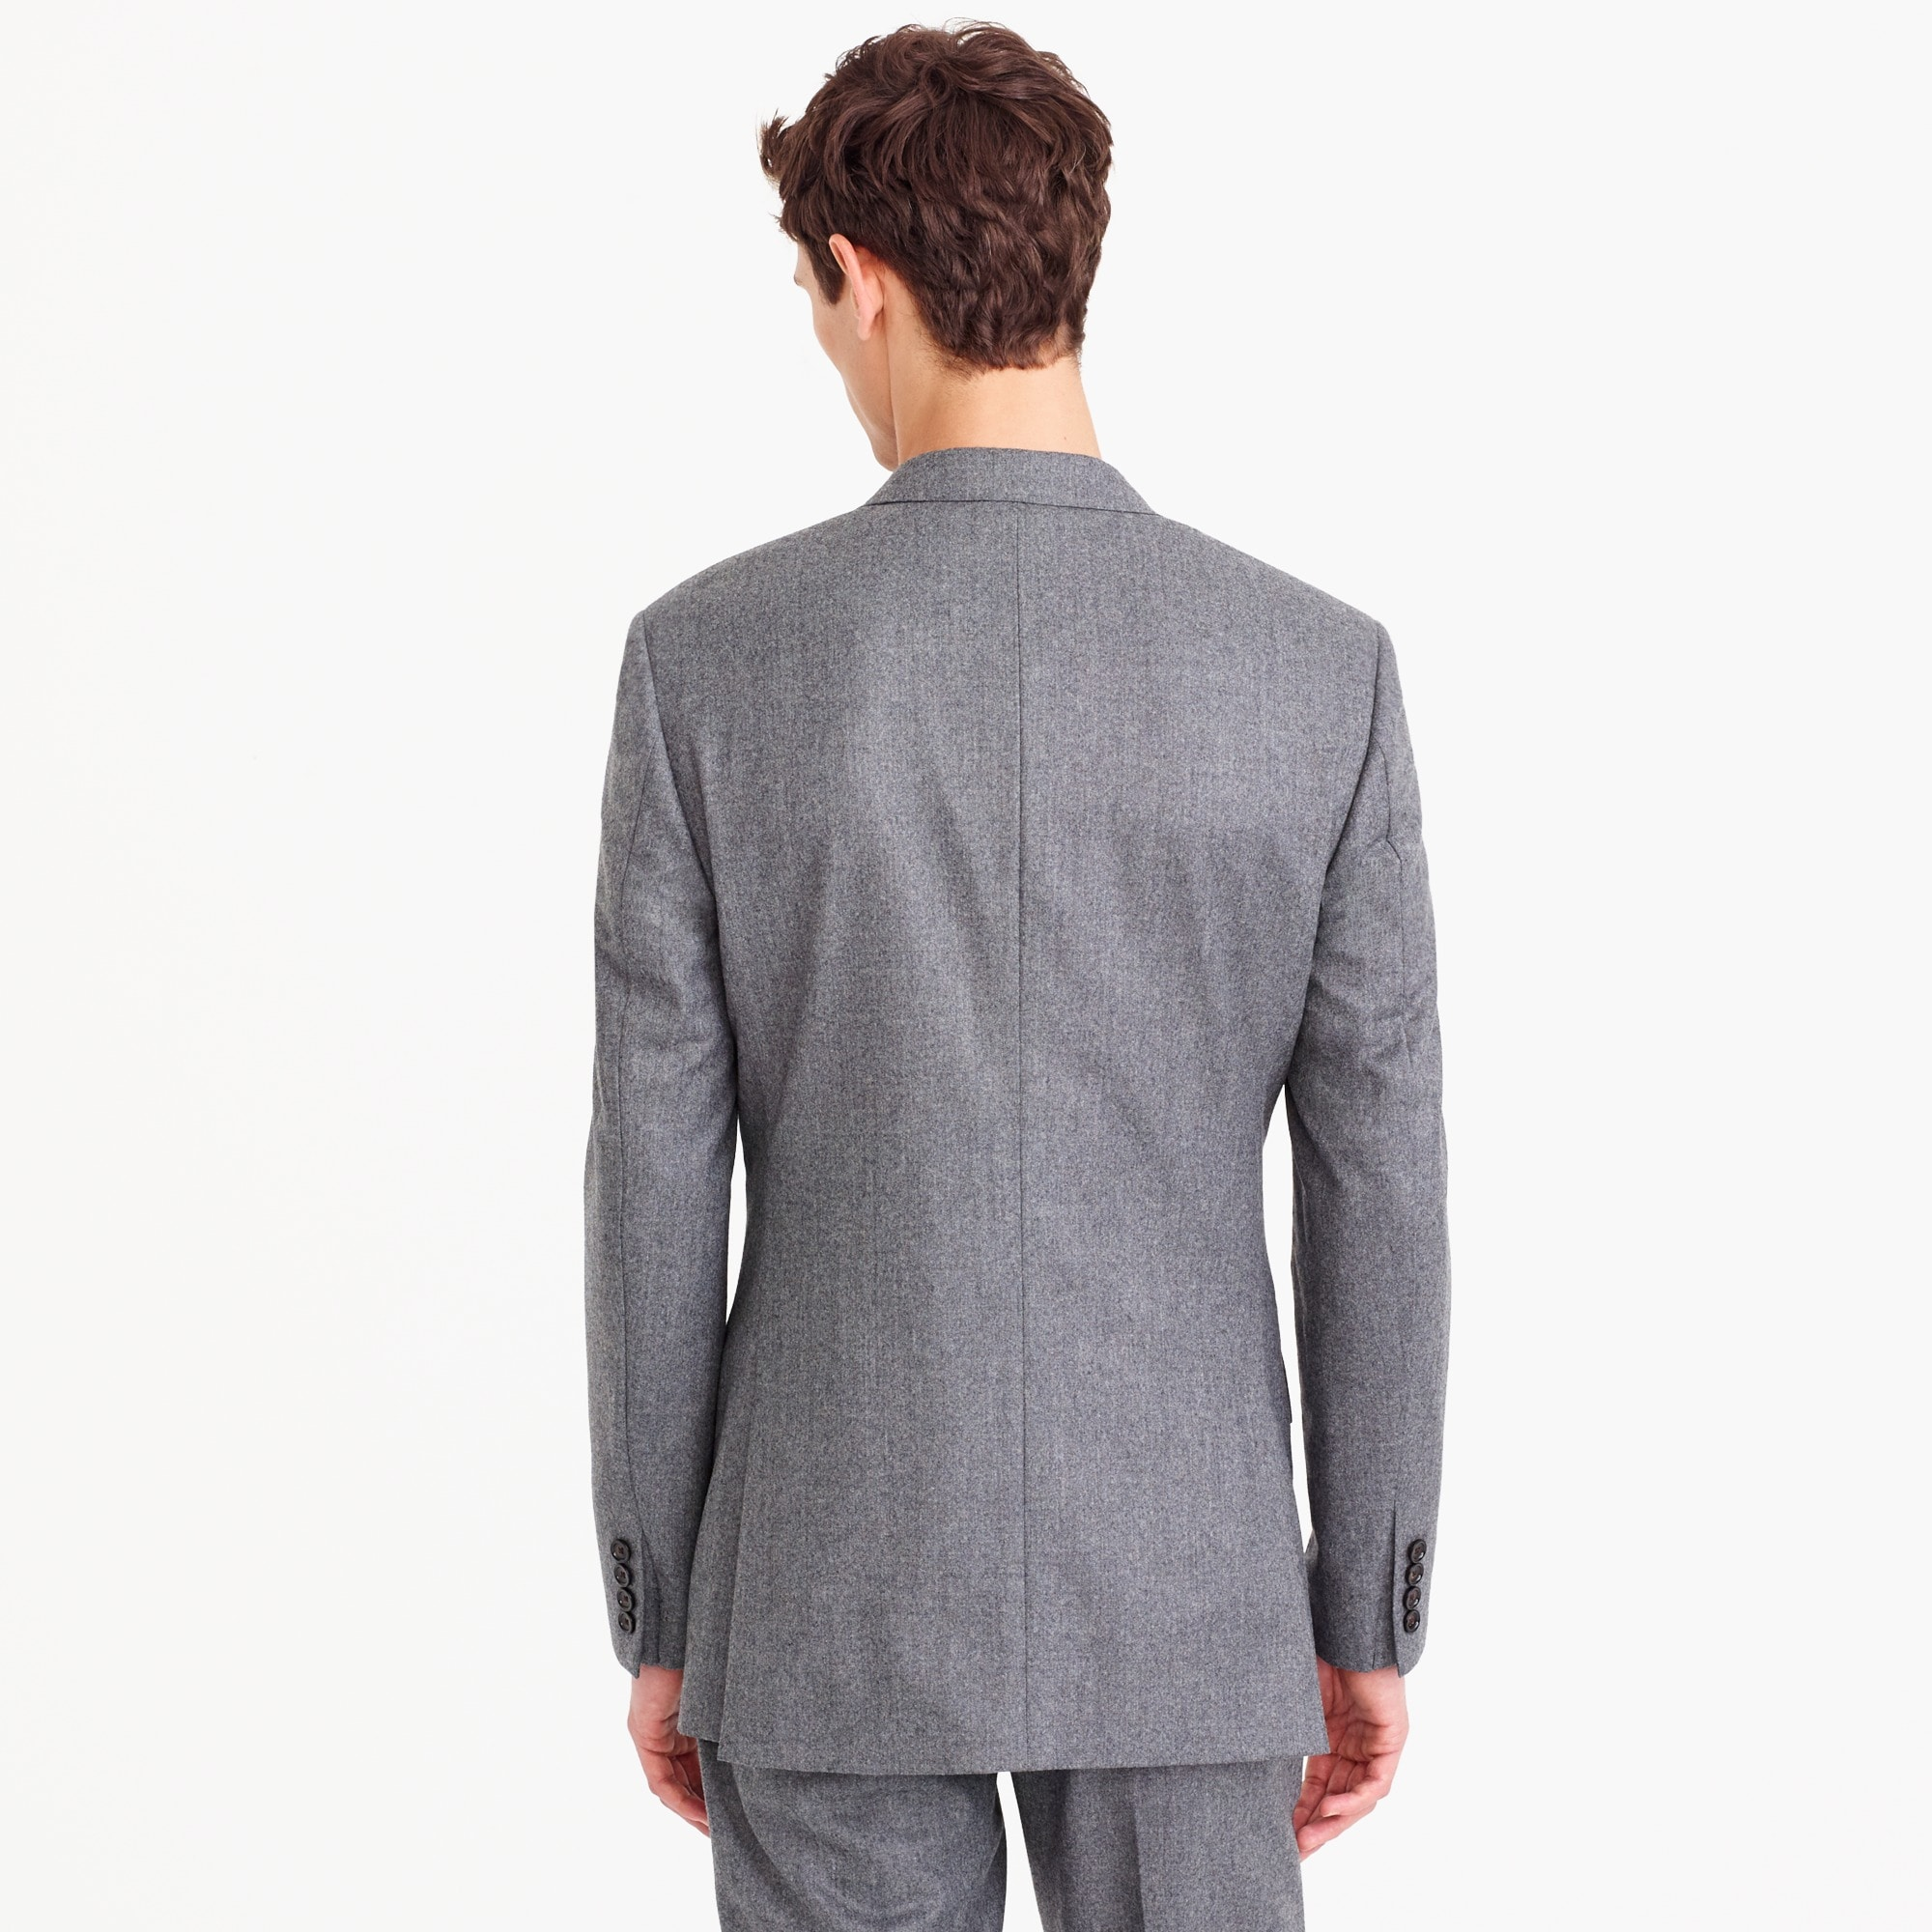 Image 3 for Ludlow Slim-fit wide-lapel suit jacket in Italian wool flannel